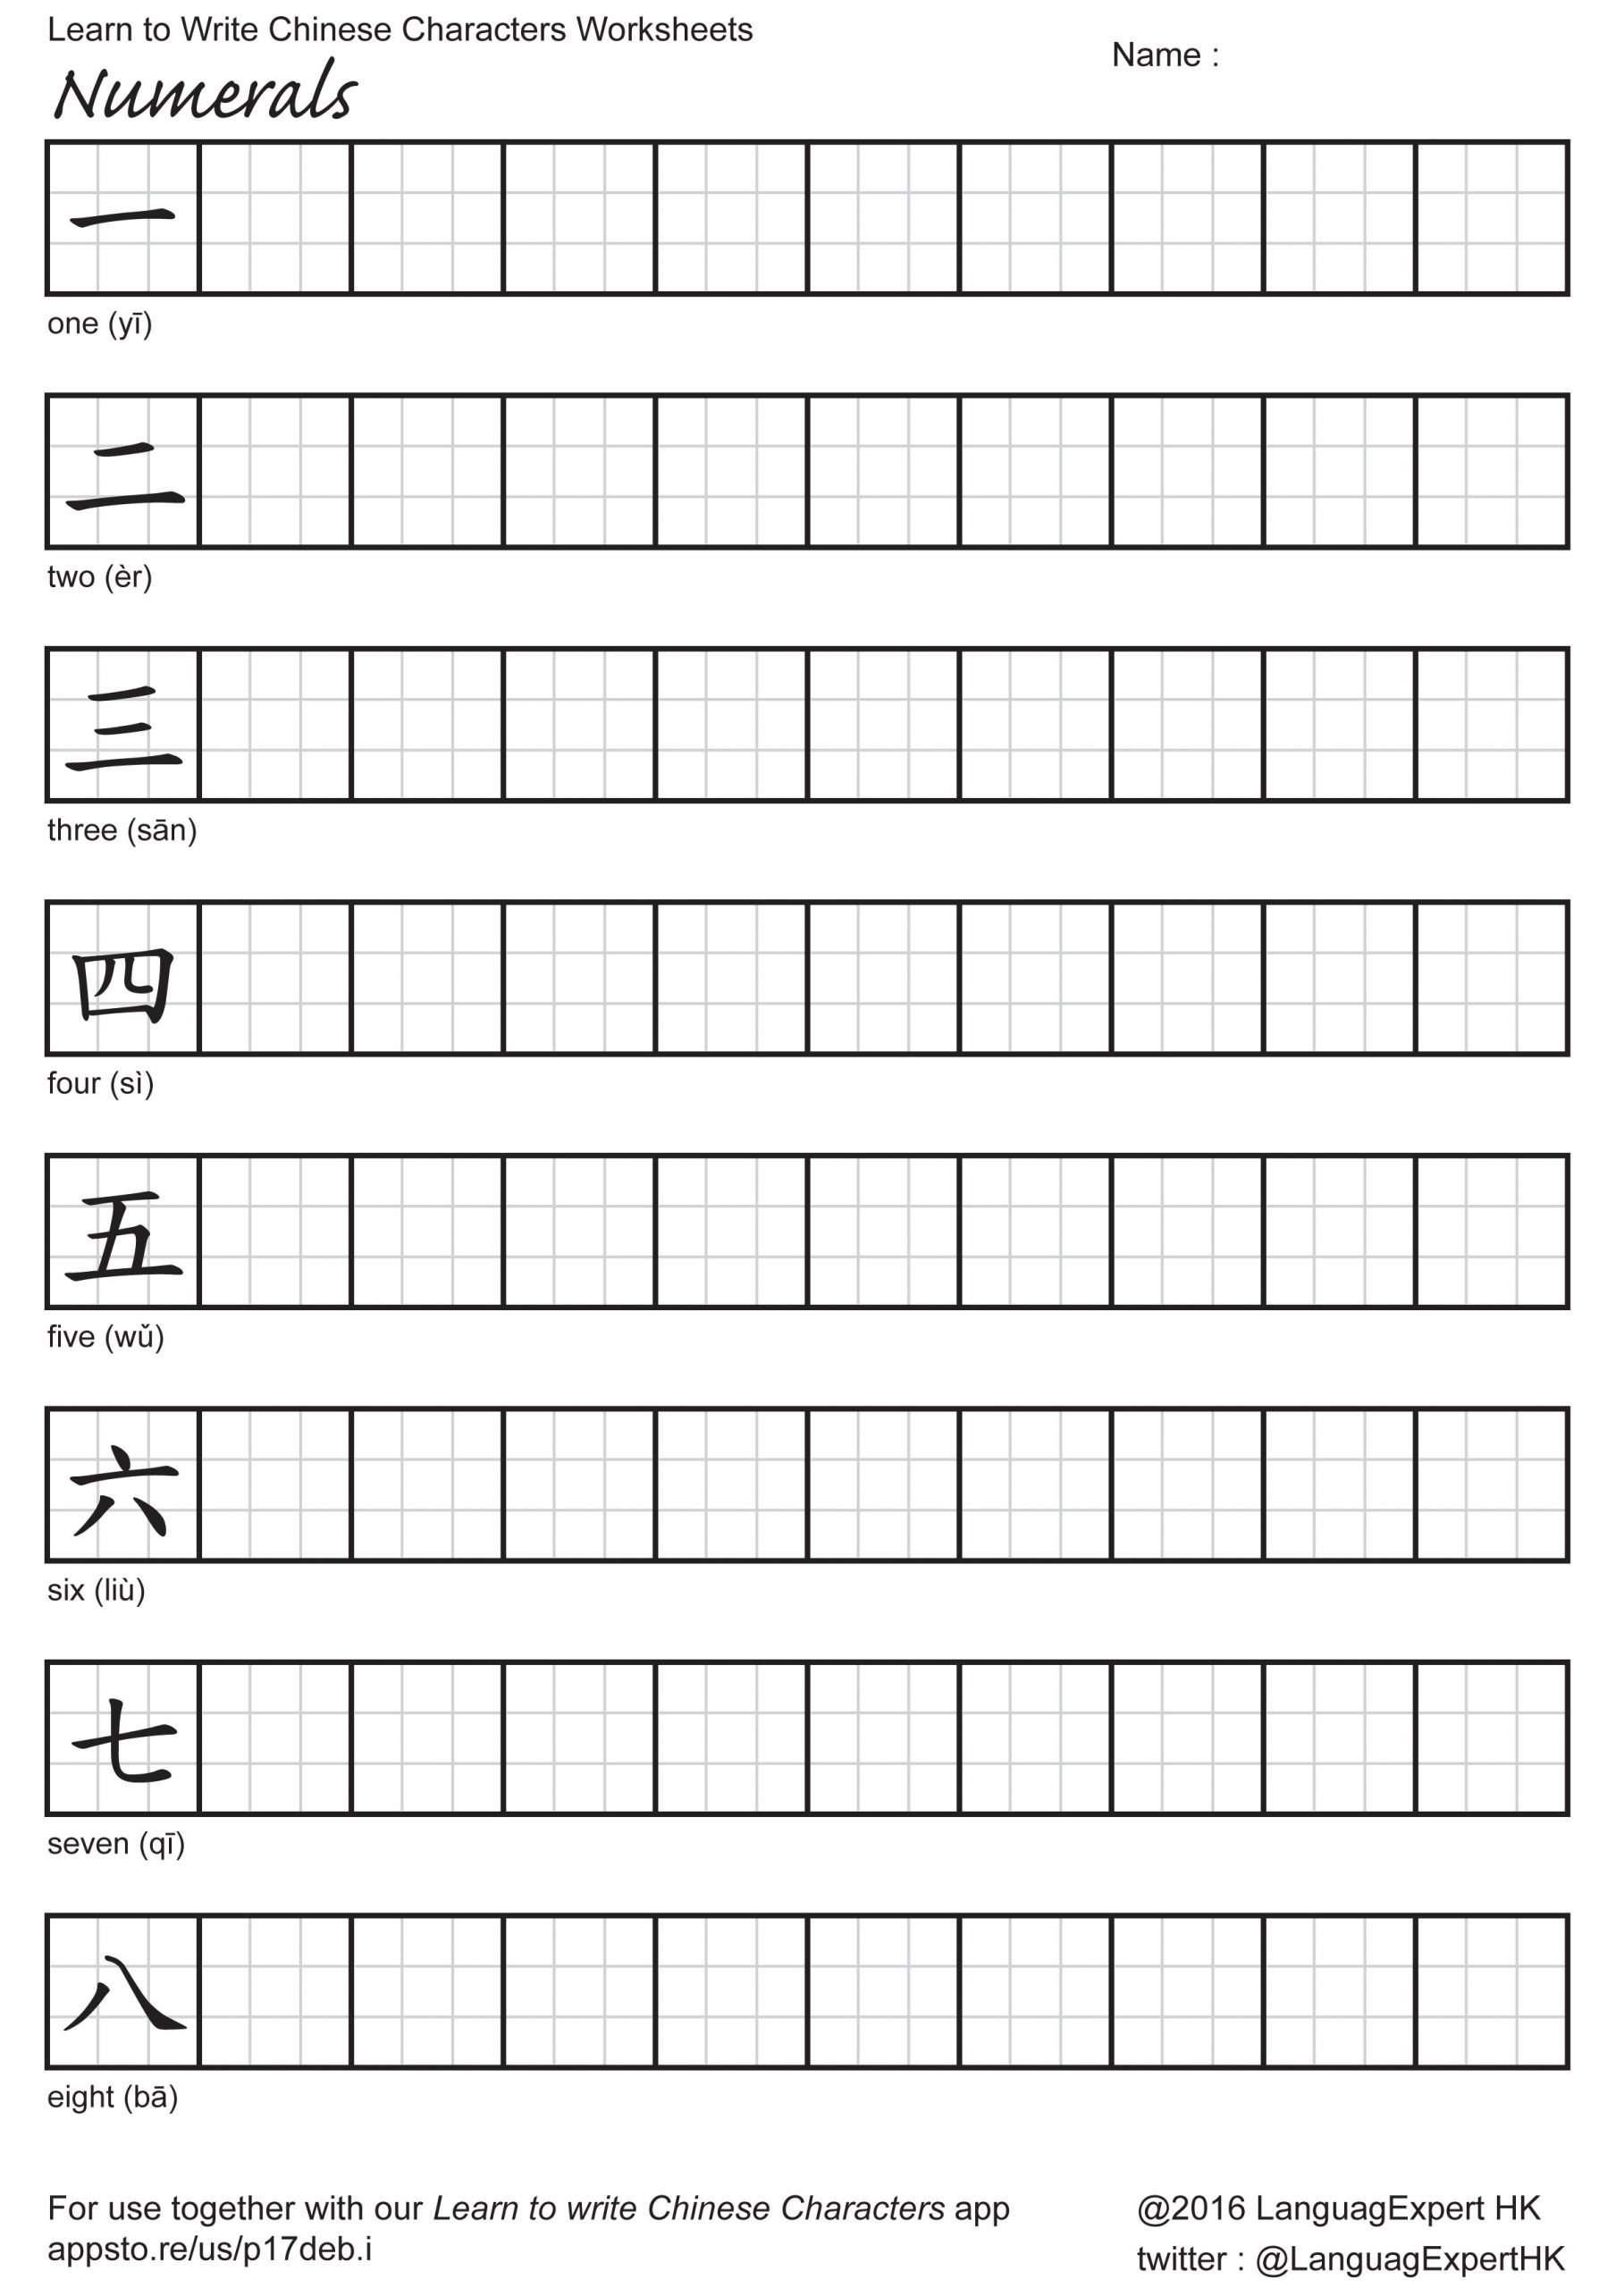 Learning Chinese Worksheets Learn to Write Chinese Characters Worksheets